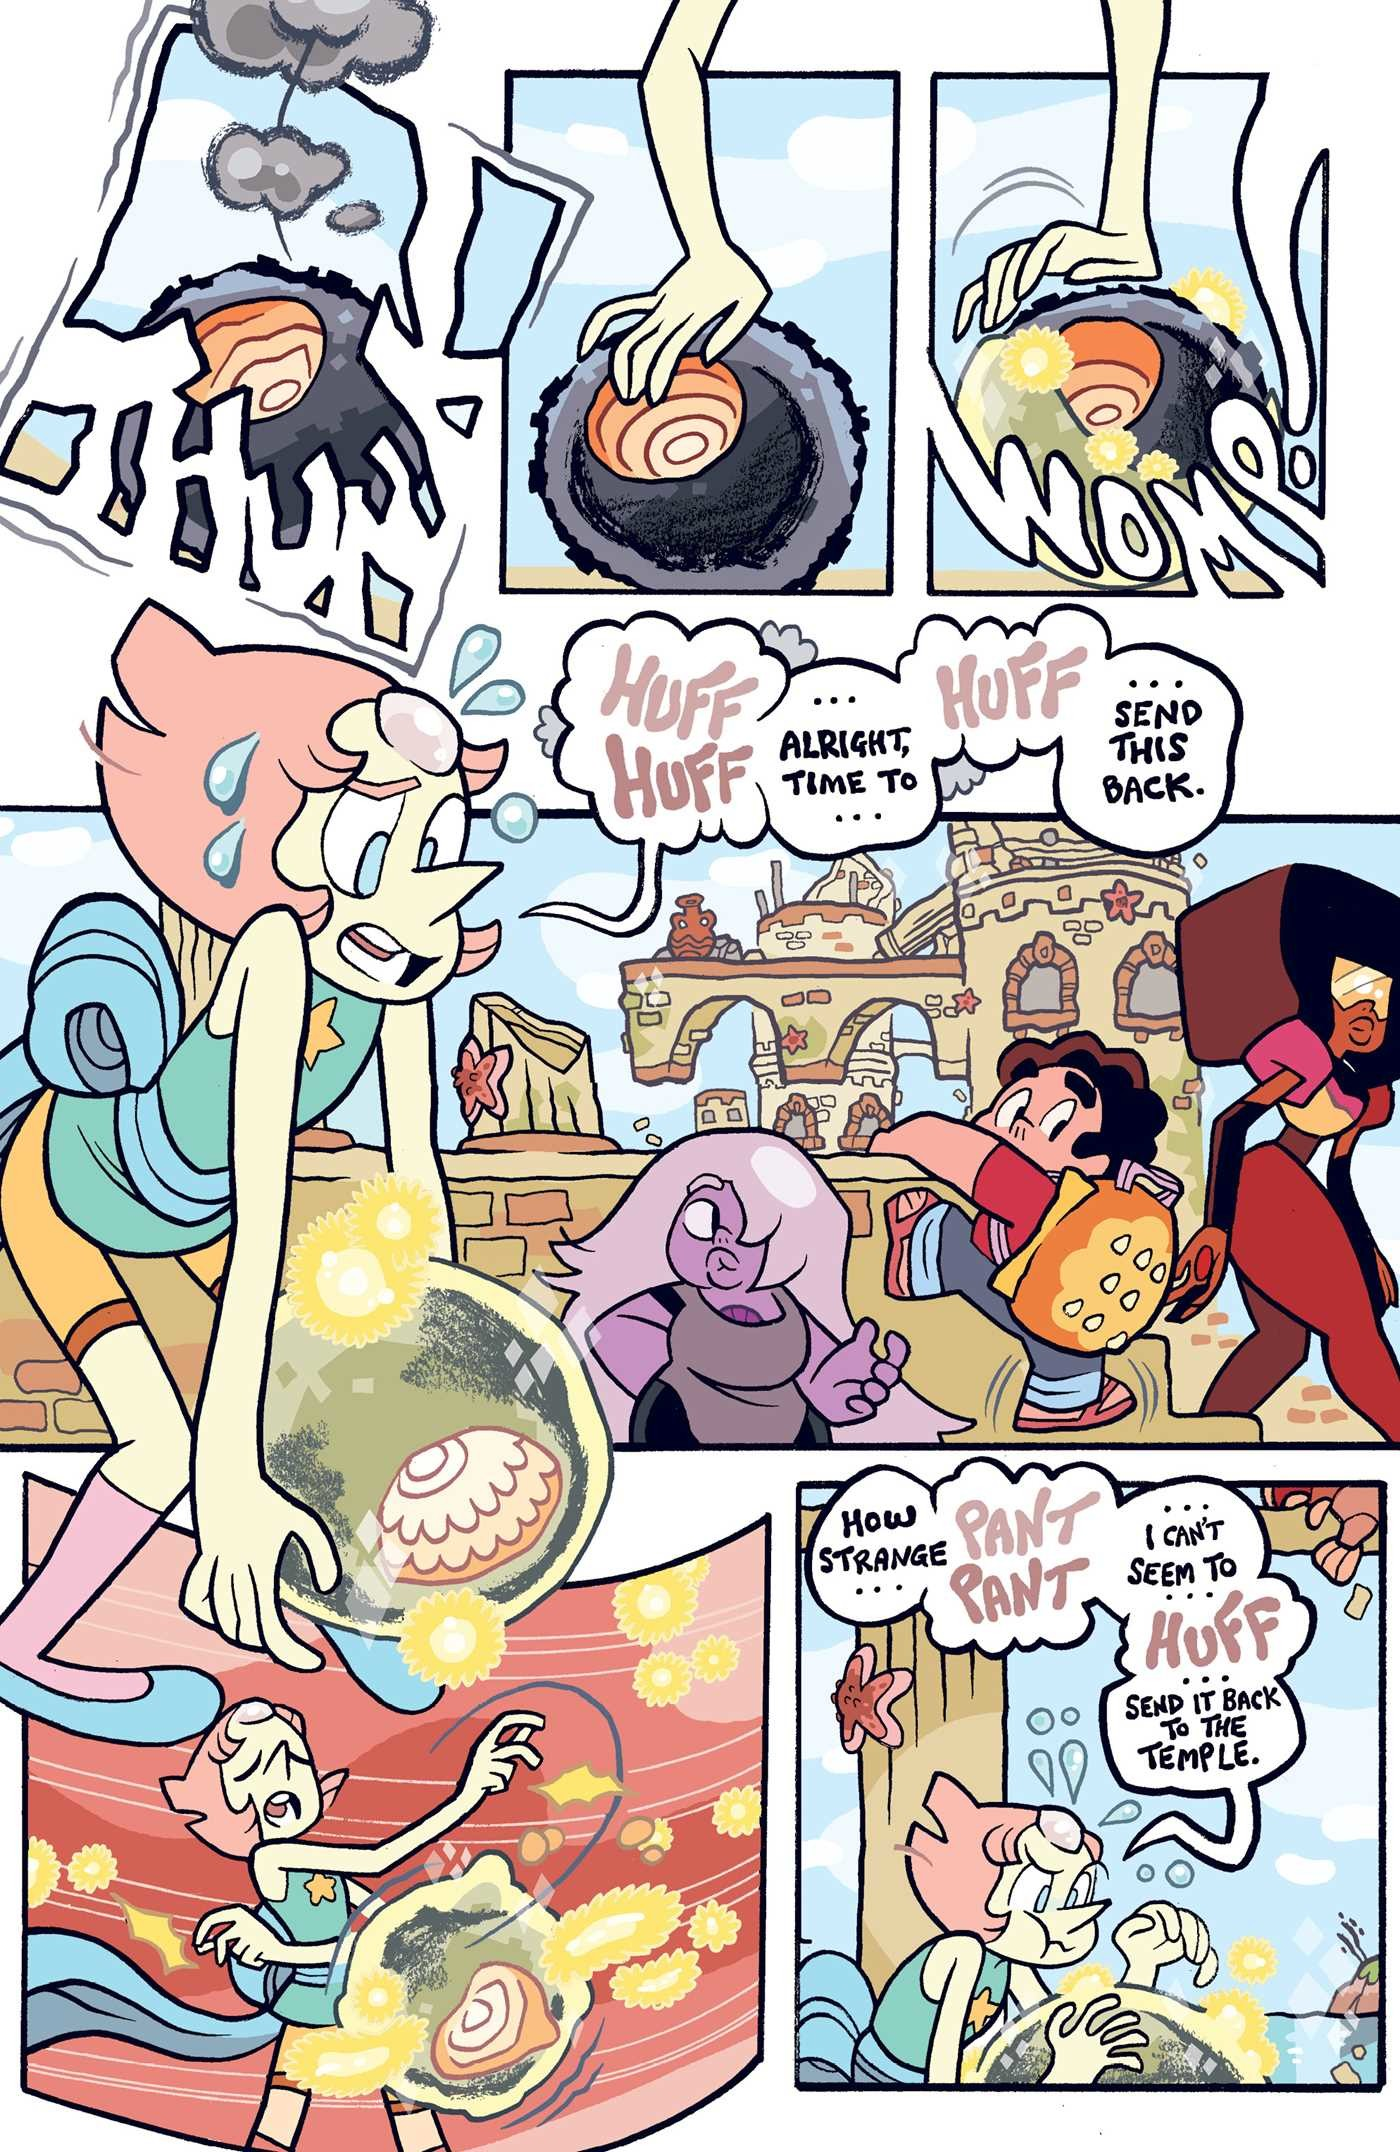 A corrupted gem is bubbled up by Pearl. Amethyst, Steven and Garnet watch as Pearl tries to lift up the gem to send it back to the temple but is unable to.